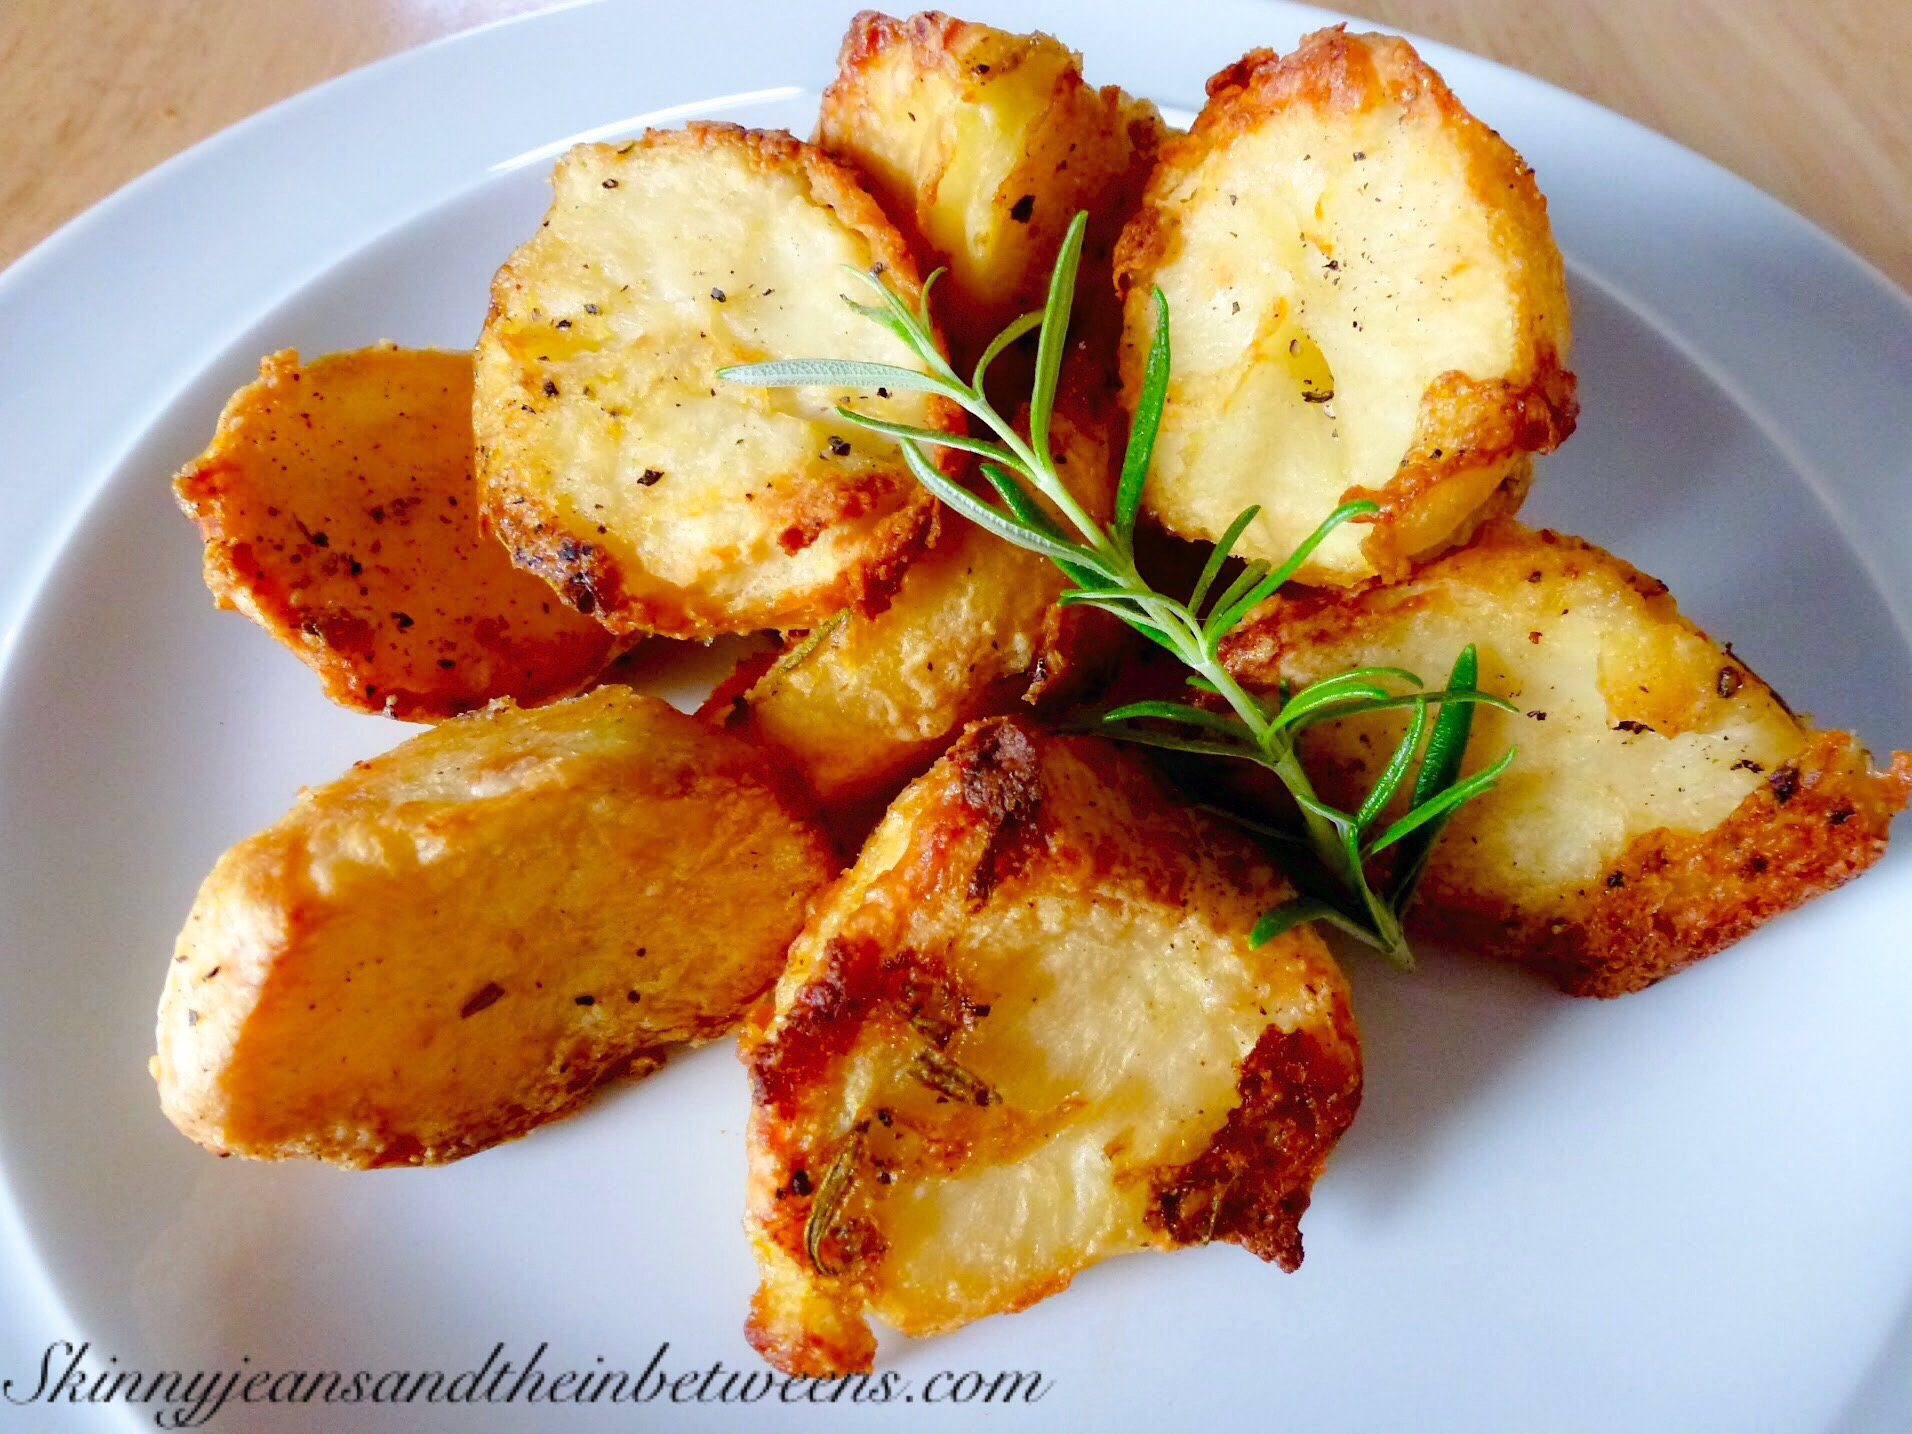 Can i cook roast potatoes in oil